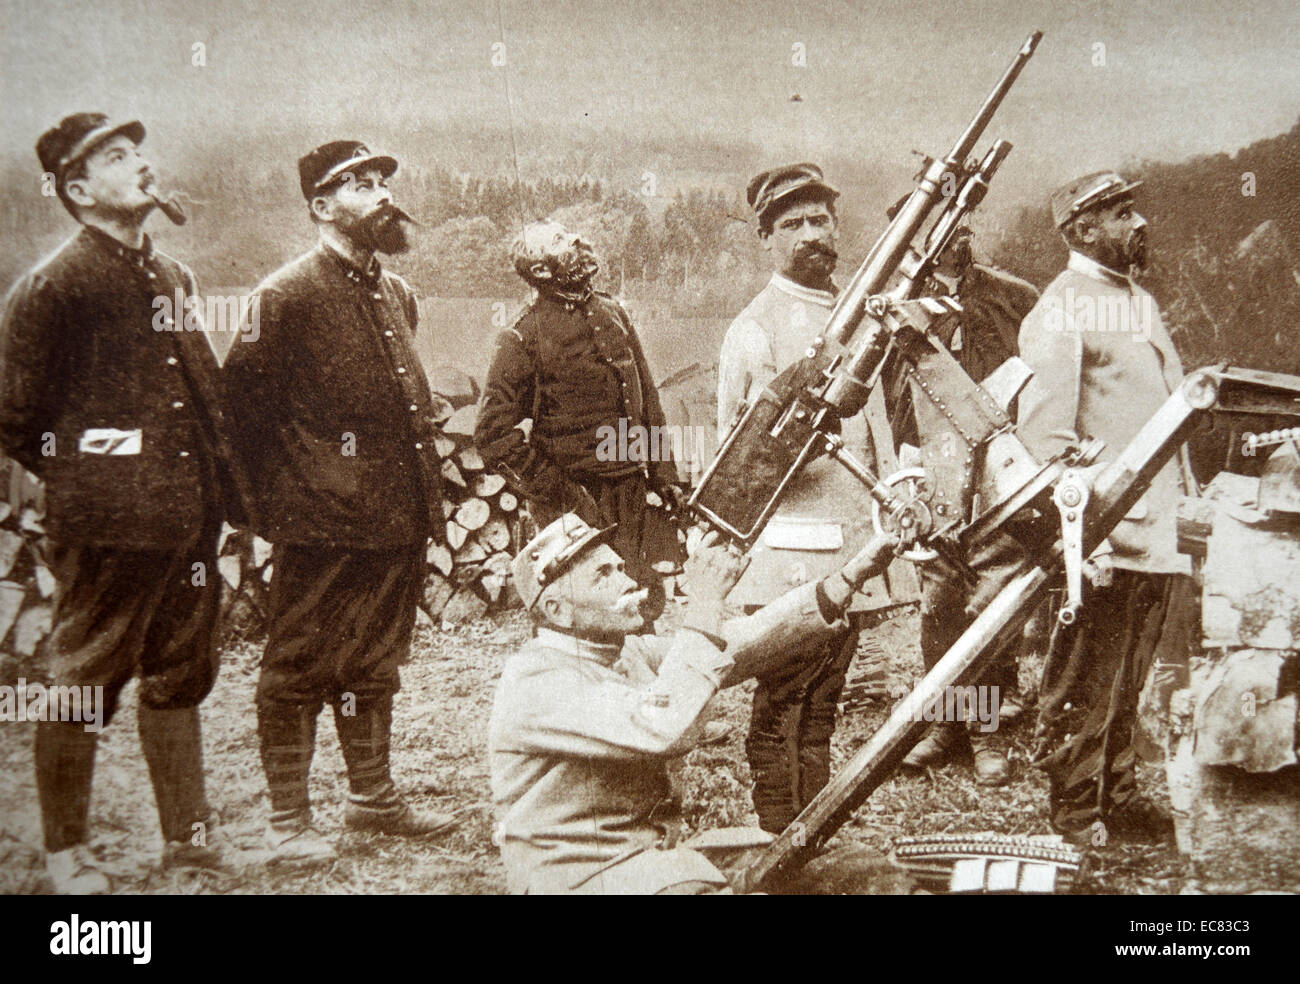 Photograph of French Anti-Aircraft Gunners within artillery position. Dated 1917 - Stock Image